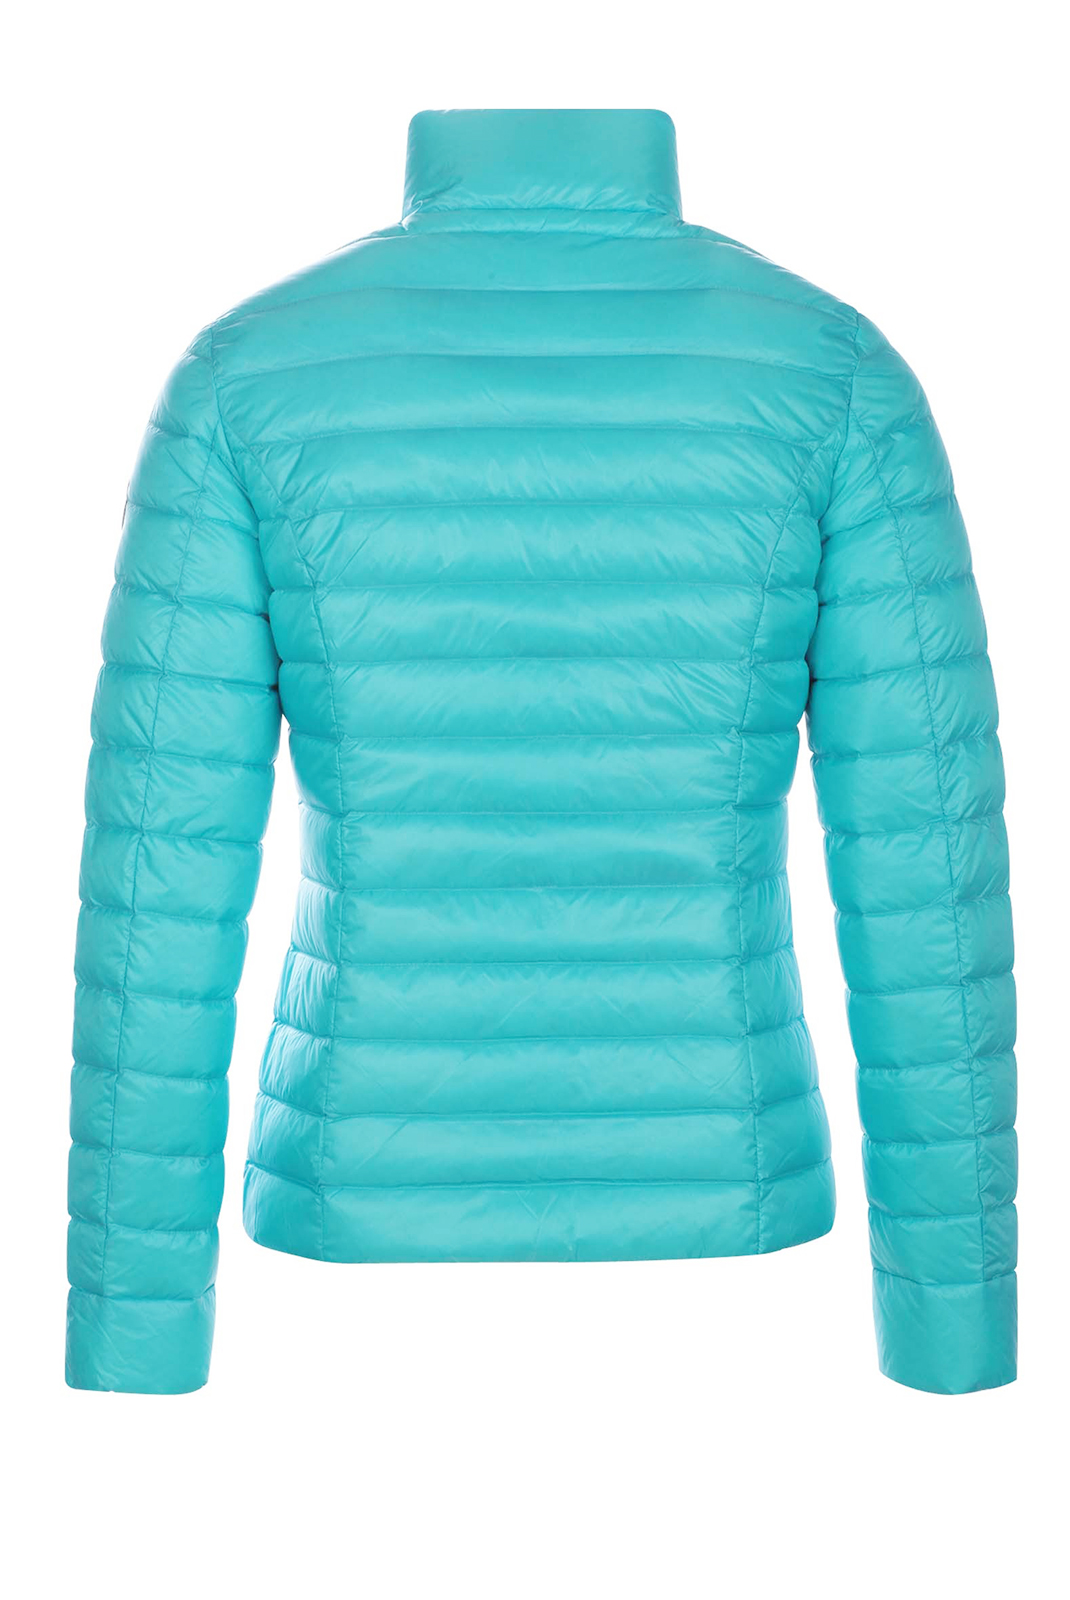 Blouson  Just over the top CHA 108 TURQUOISE